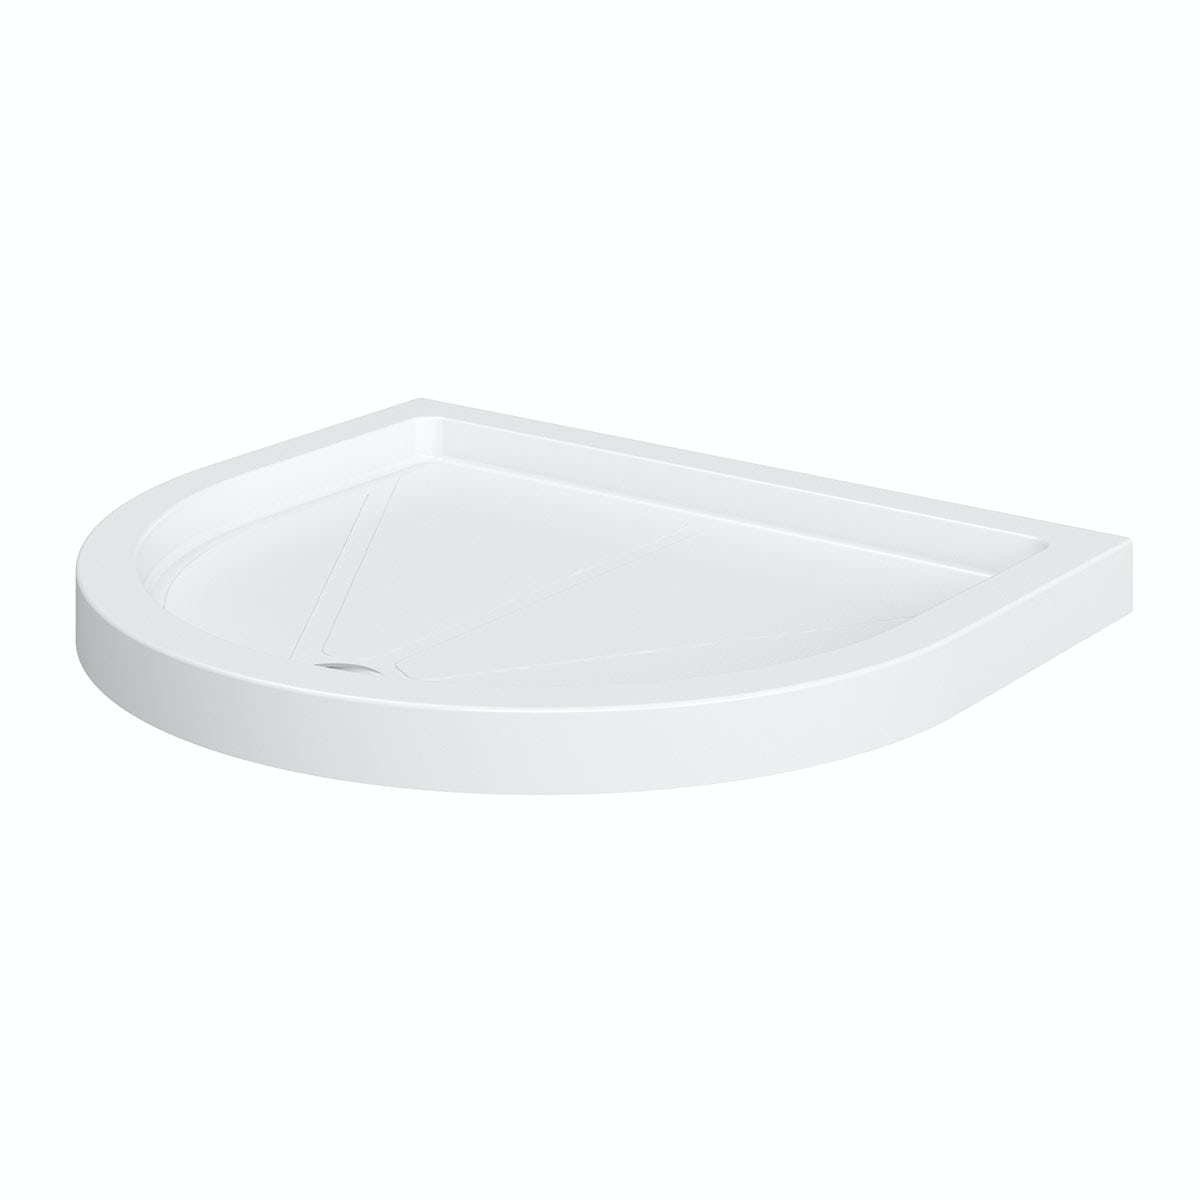 Orchard D shaped stone shower tray